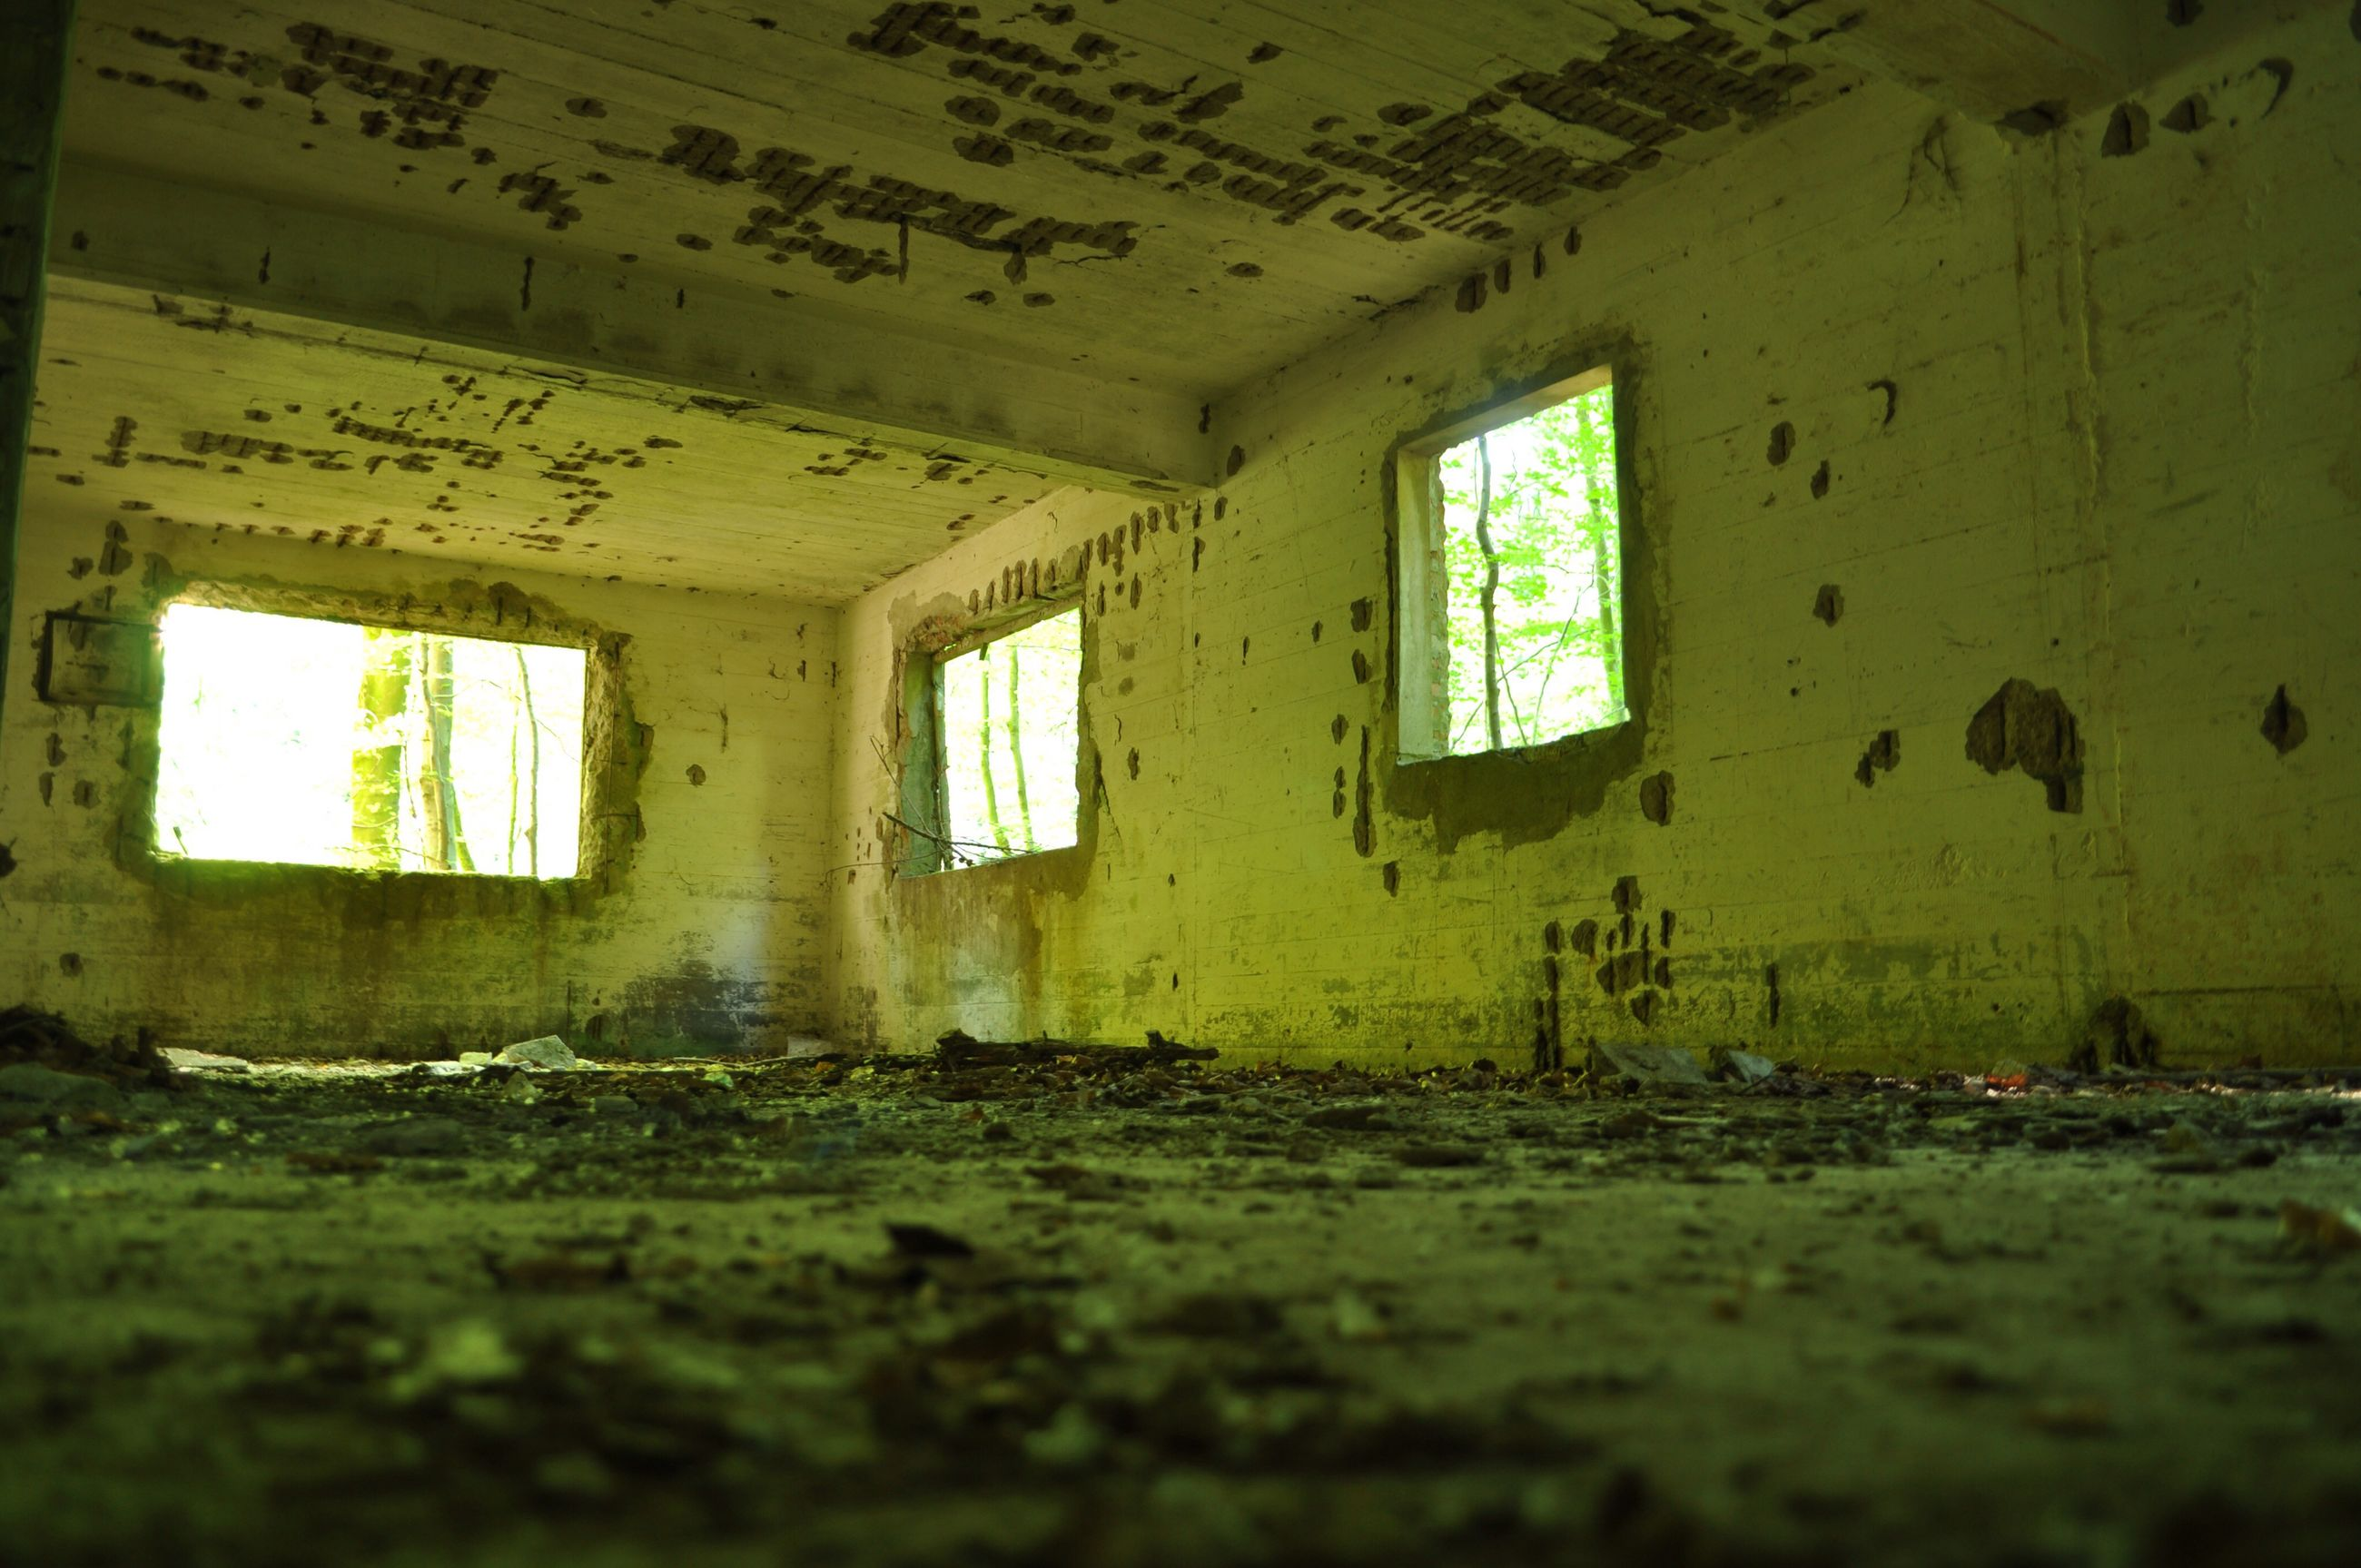 indoors, abandoned, damaged, obsolete, architecture, deterioration, built structure, run-down, window, old, interior, bad condition, messy, ruined, weathered, wall - building feature, house, destruction, dirty, ceiling